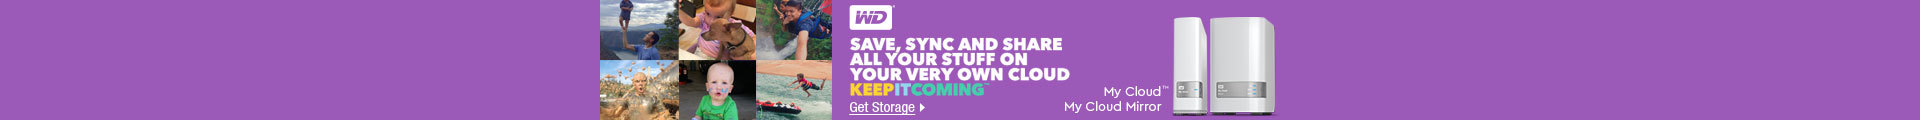 SAVE, SYNC AND SHARE